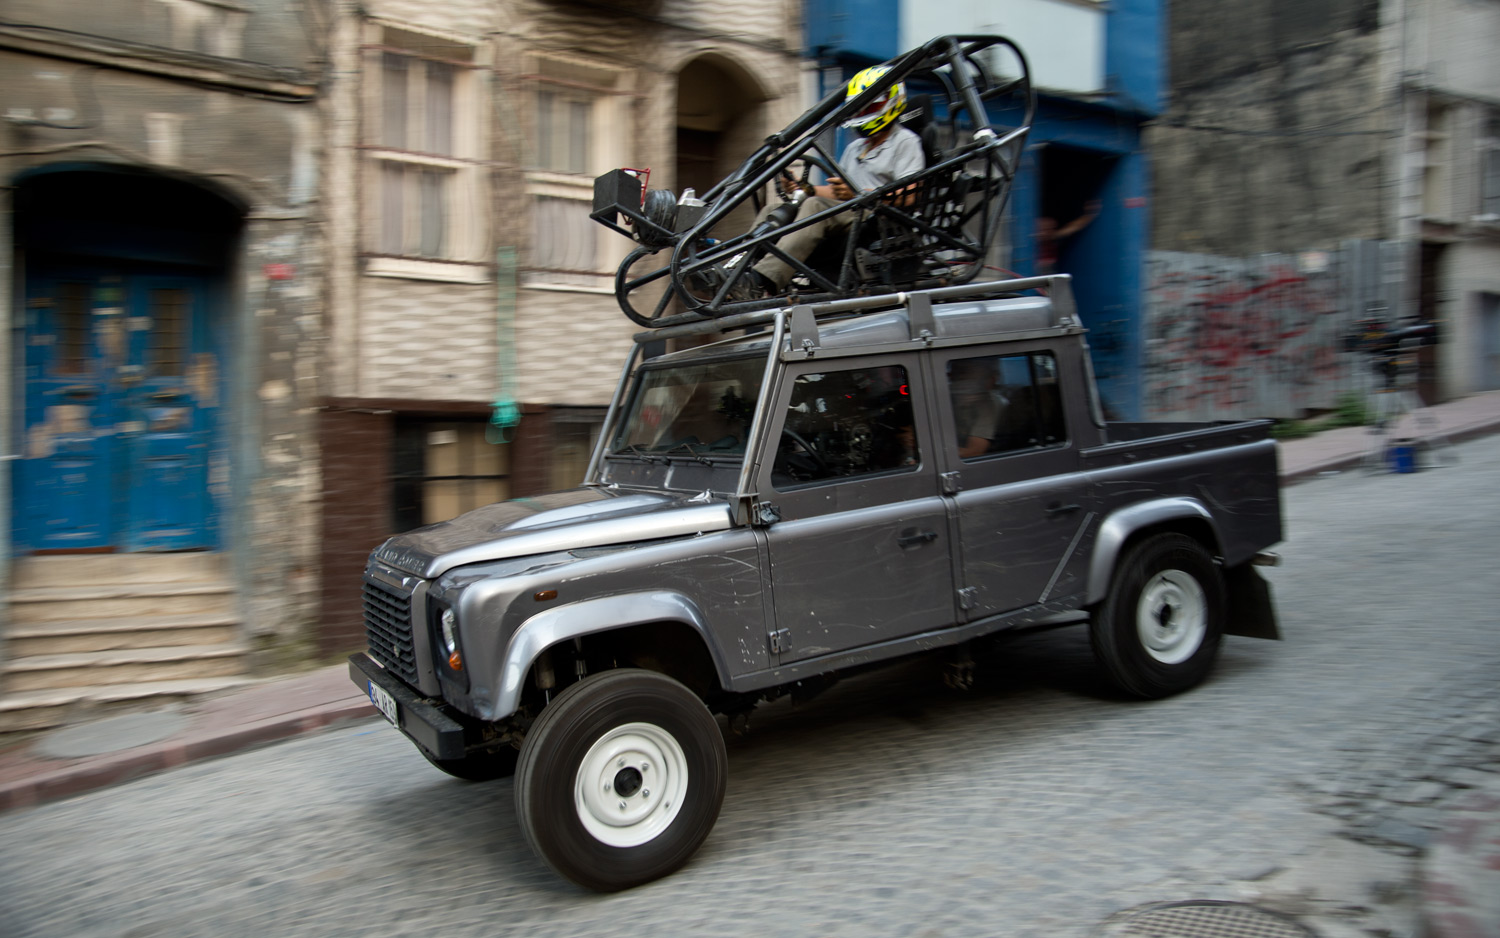 Ben Collins Skyfall Land Rover Defender Stunt Car